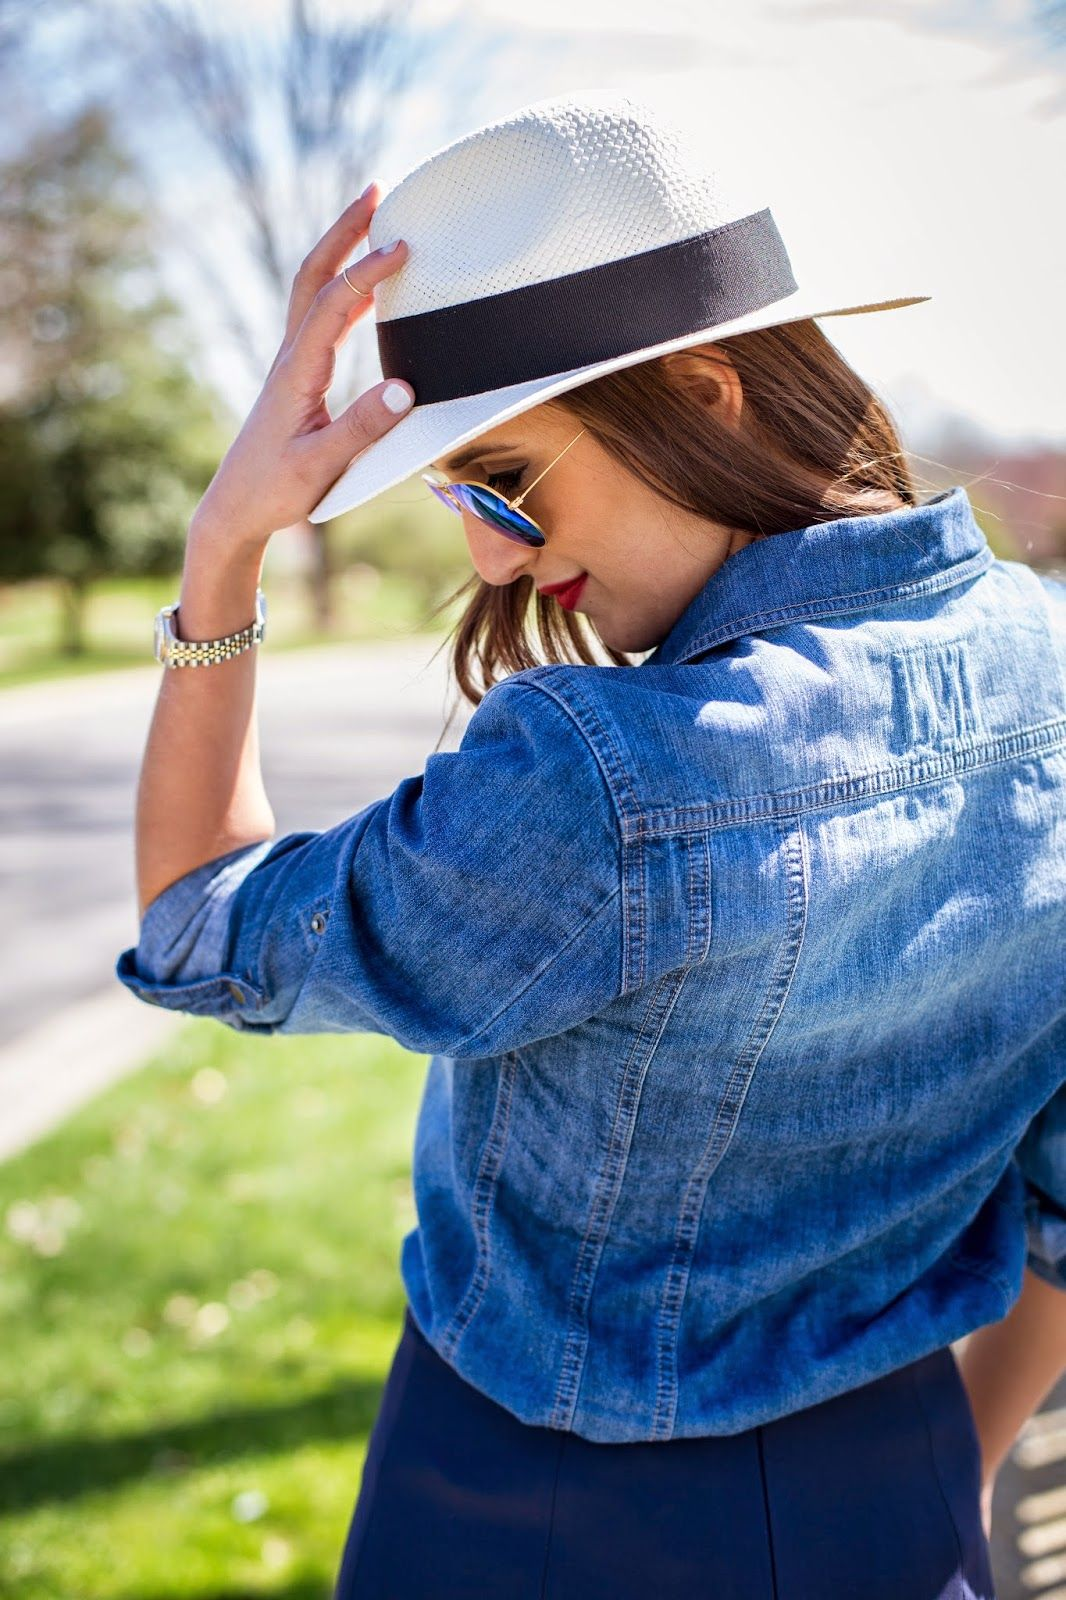 A Southern Drawl: Bucco Wedges and Chambray #jcrew